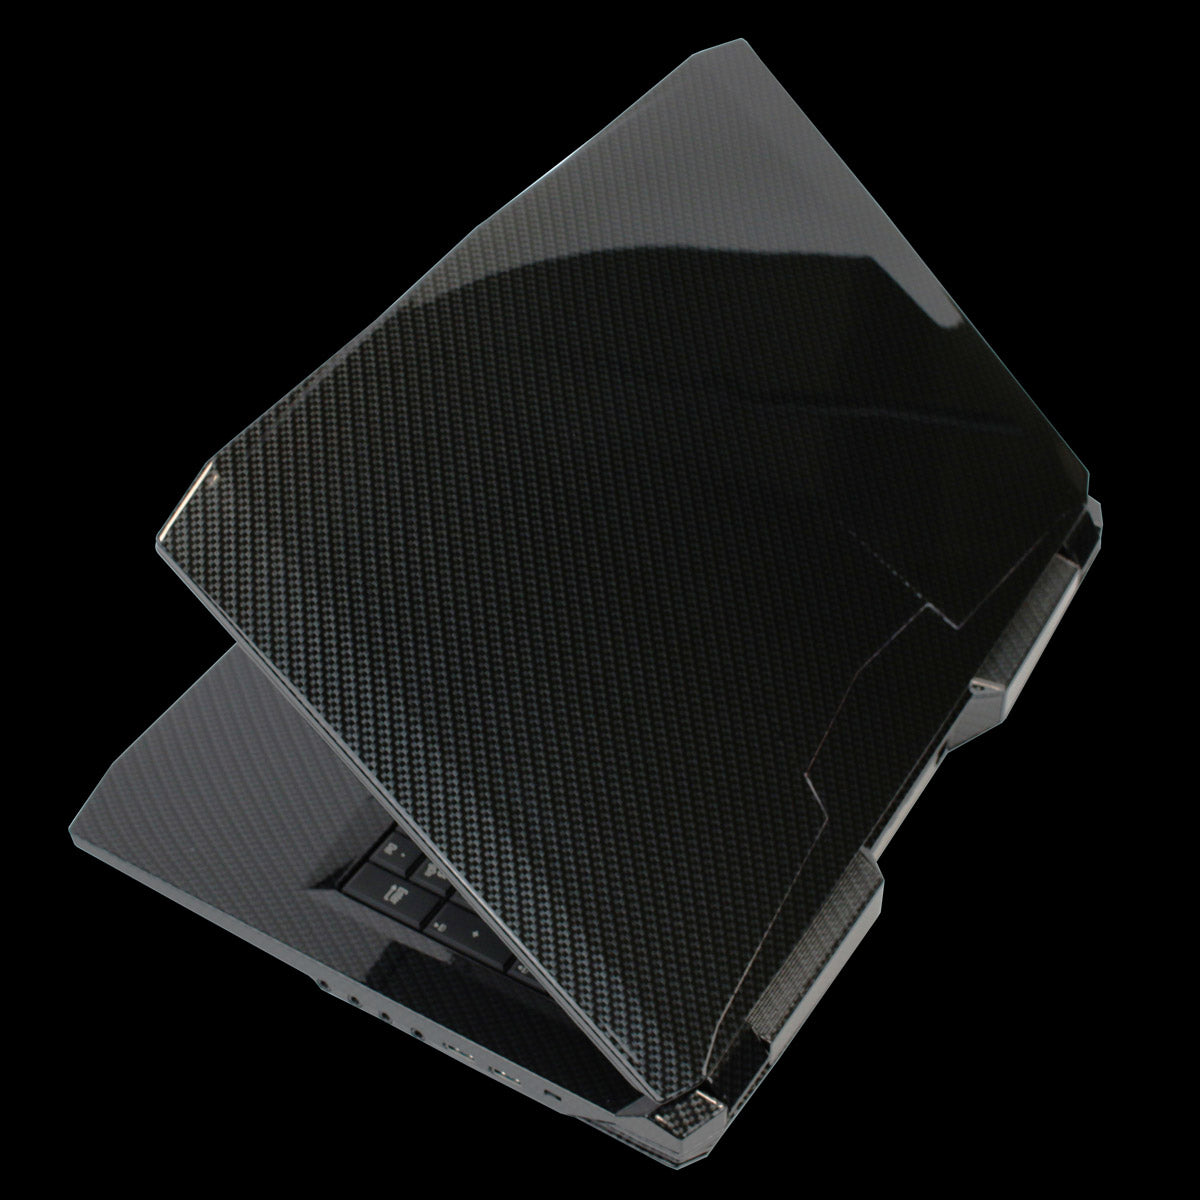 Laptop hydro dipped with carbon fiber and black pattern.